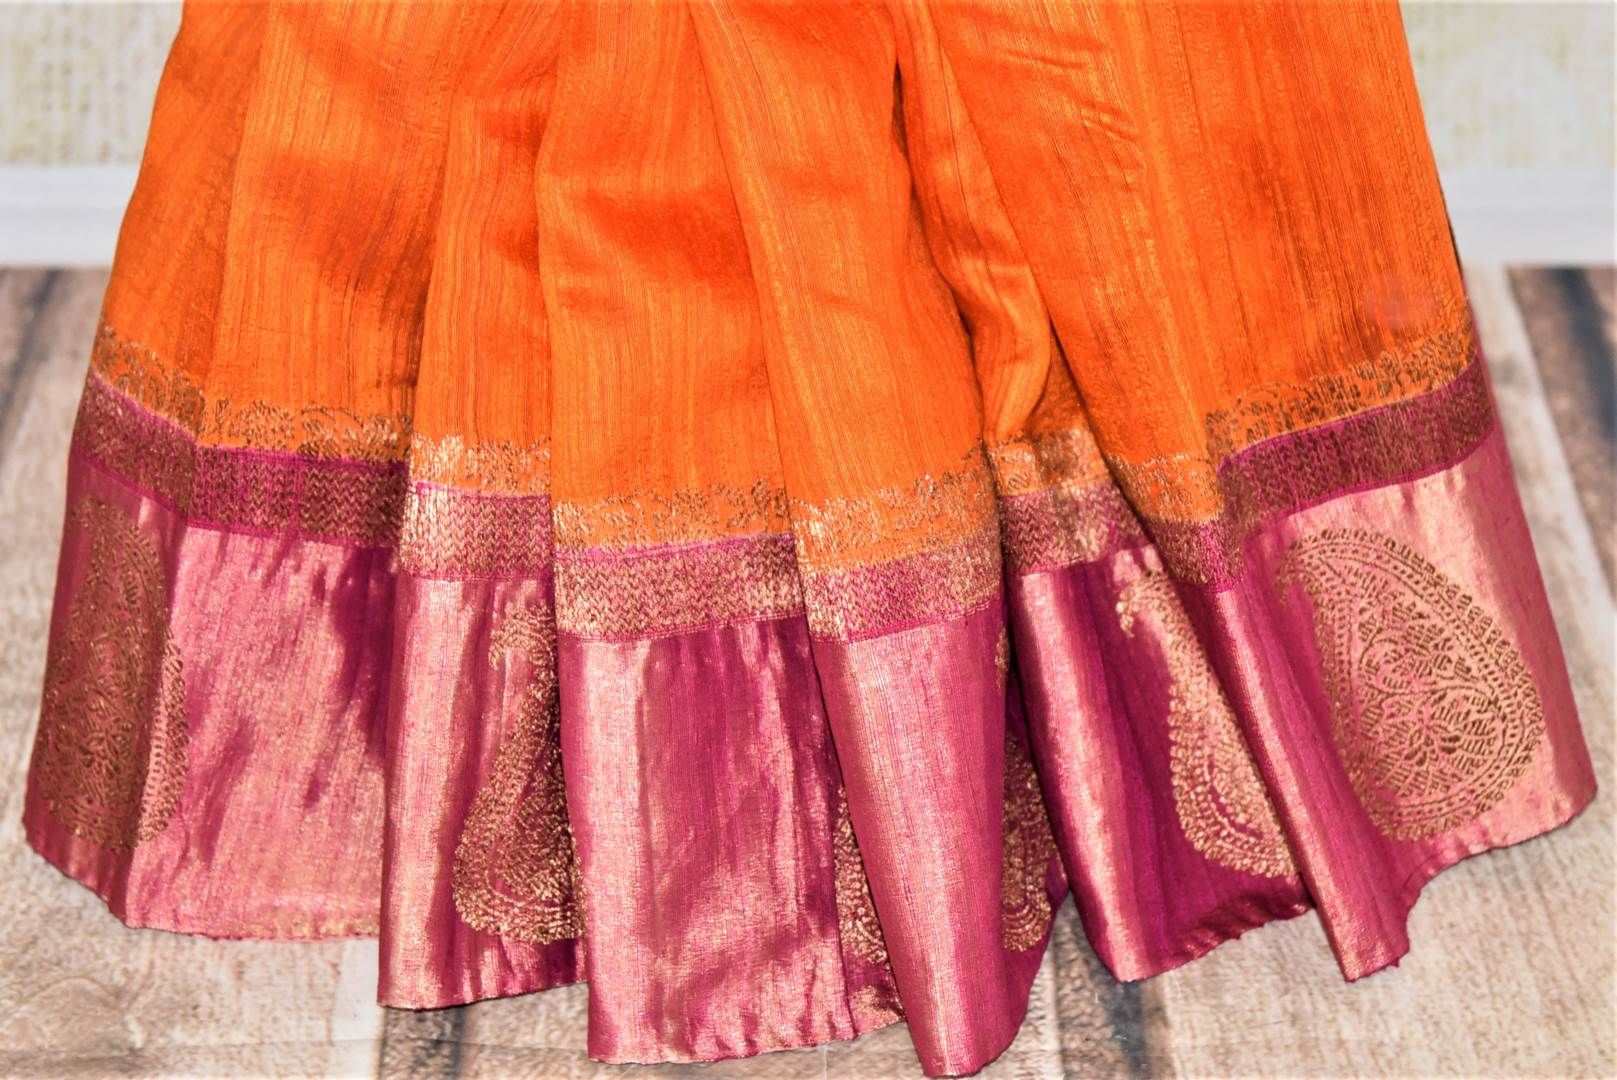 Shop stunning orange tussar Banarsi saree online in USA with zari work on pink border. Choose tasteful handloom sarees for special occasions from Pure Elegance. Our exclusive Indian fashion store has a myriad of exquisite pure silk saris, tussar sarees, Banarasi sarees for Indian women in USA.-pleats